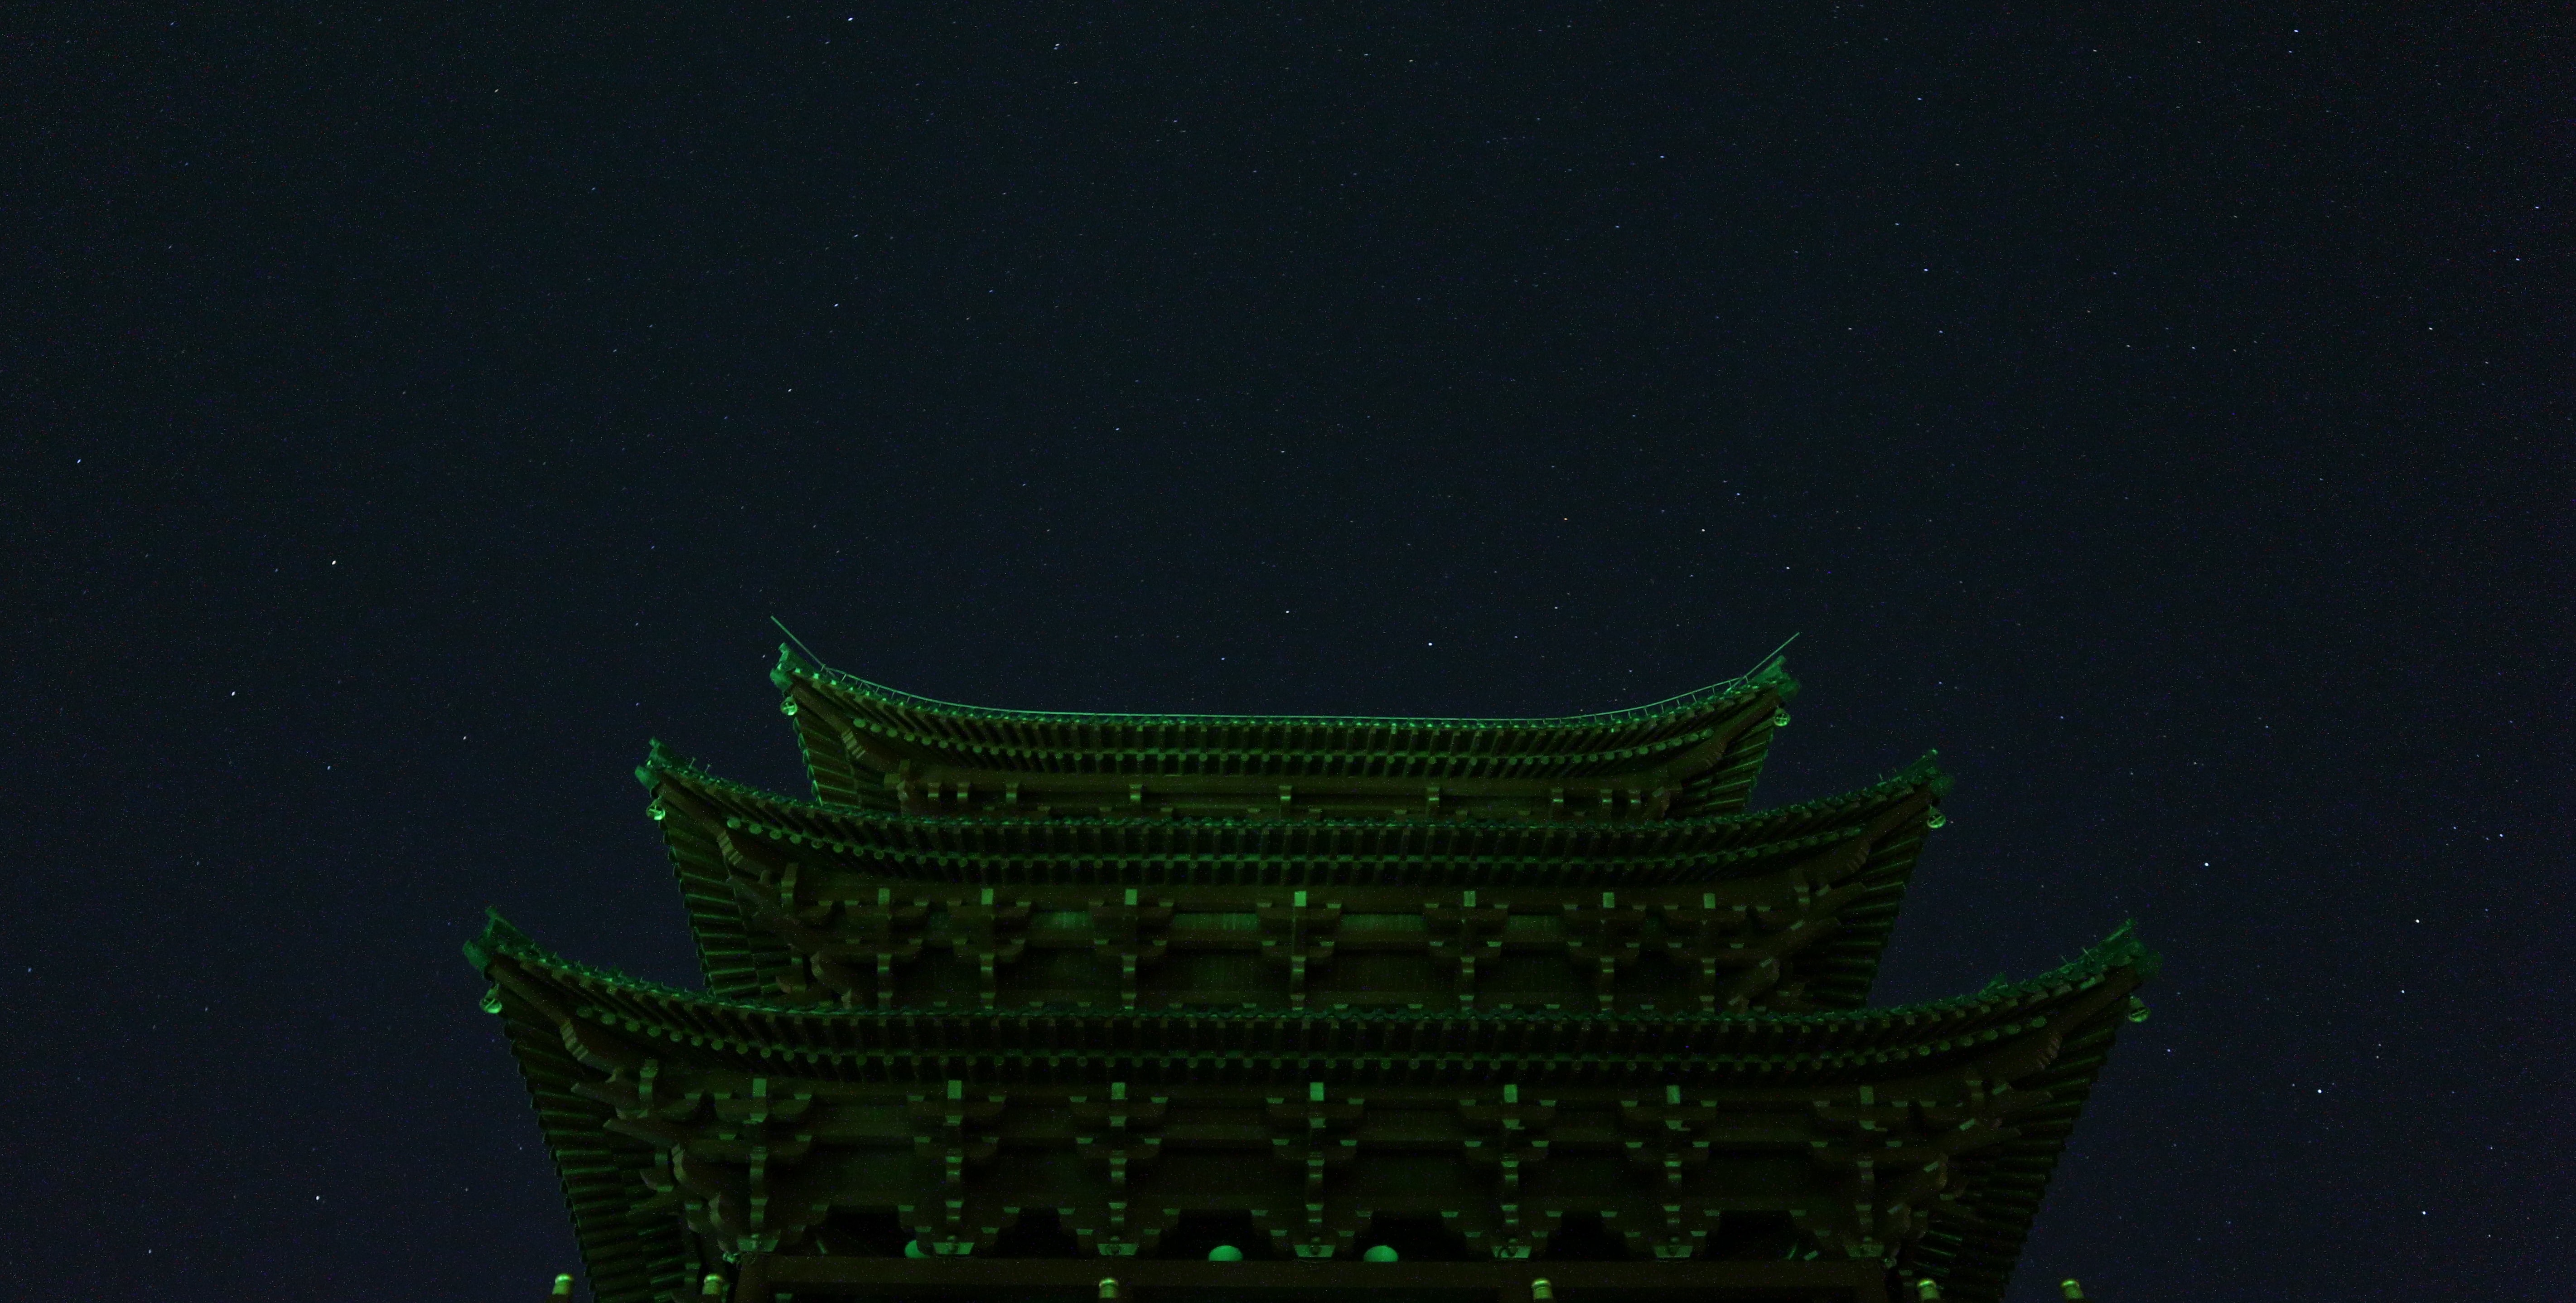 A building illuminated with green lights.